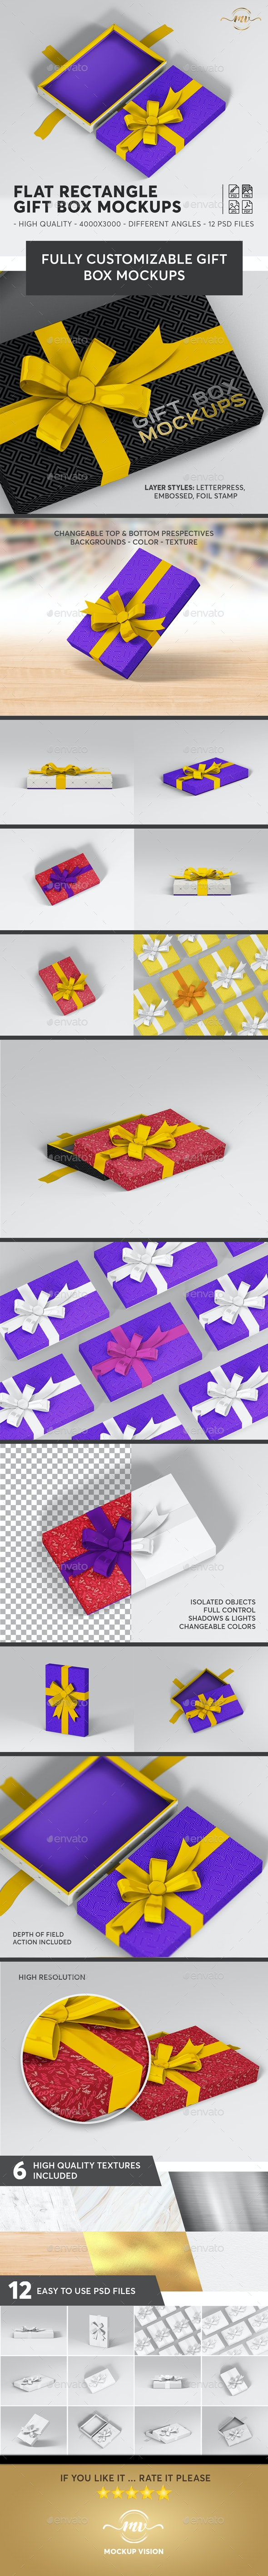 Gift Box Flat Rectangle Mockups - Miscellaneous Packaging